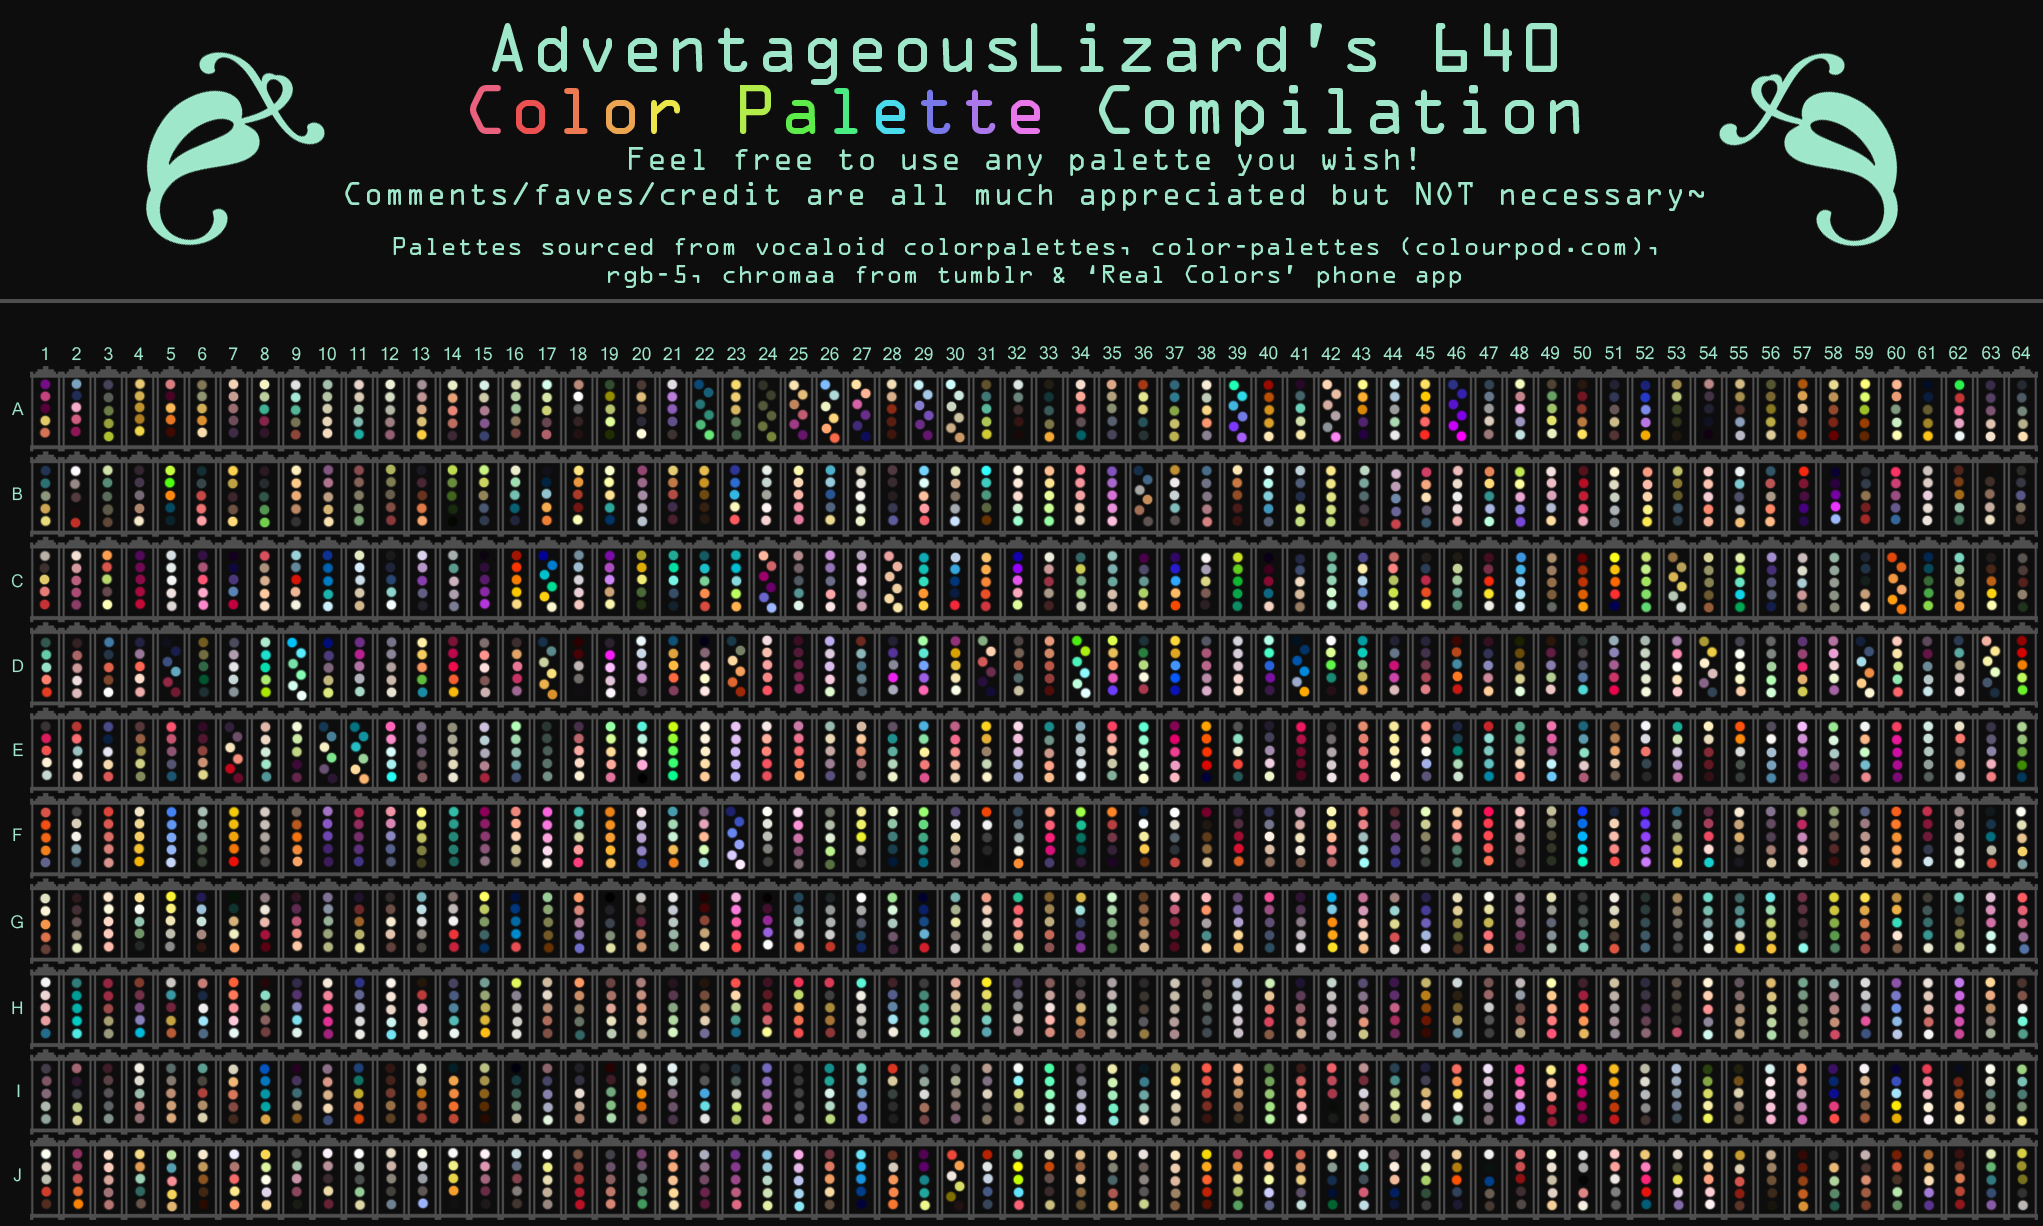 Glamorous Adventageouslizard's 640 Color Palette Compilation regarding Color Palette Meme